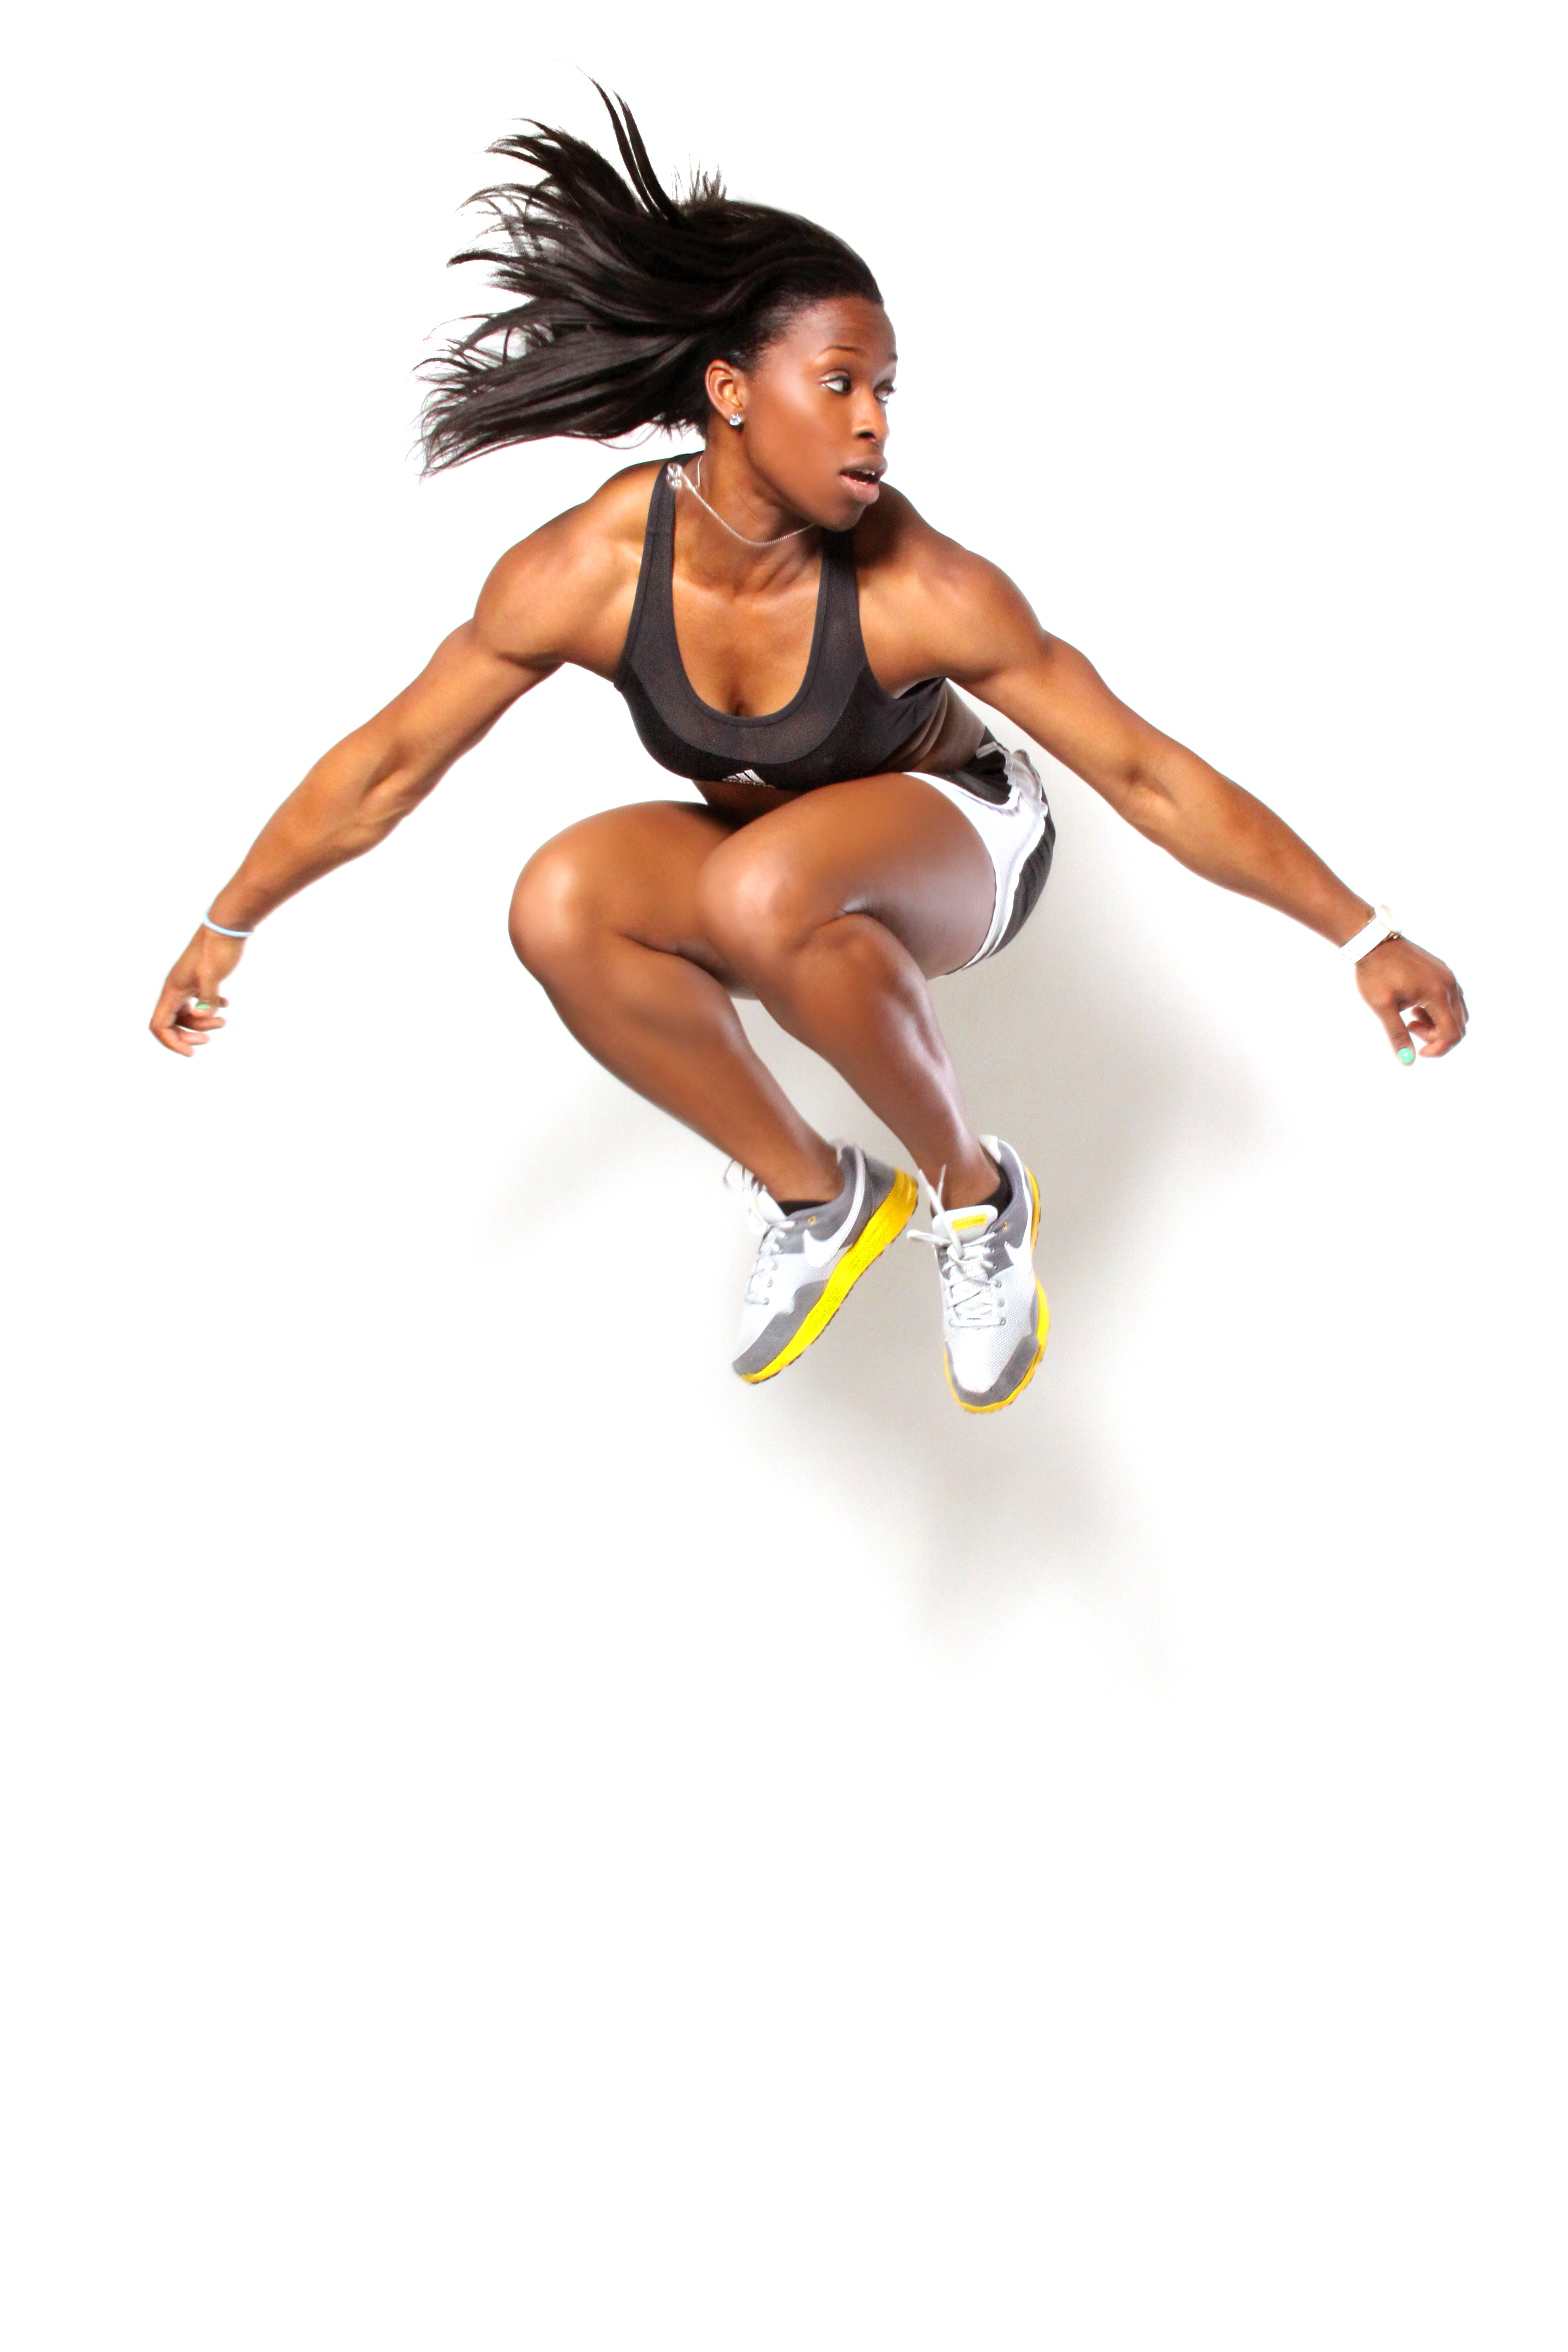 Coach Victoria Thomas 11-year volleyball coach Rutgers University OH Certified Strength and Conditioning Coach